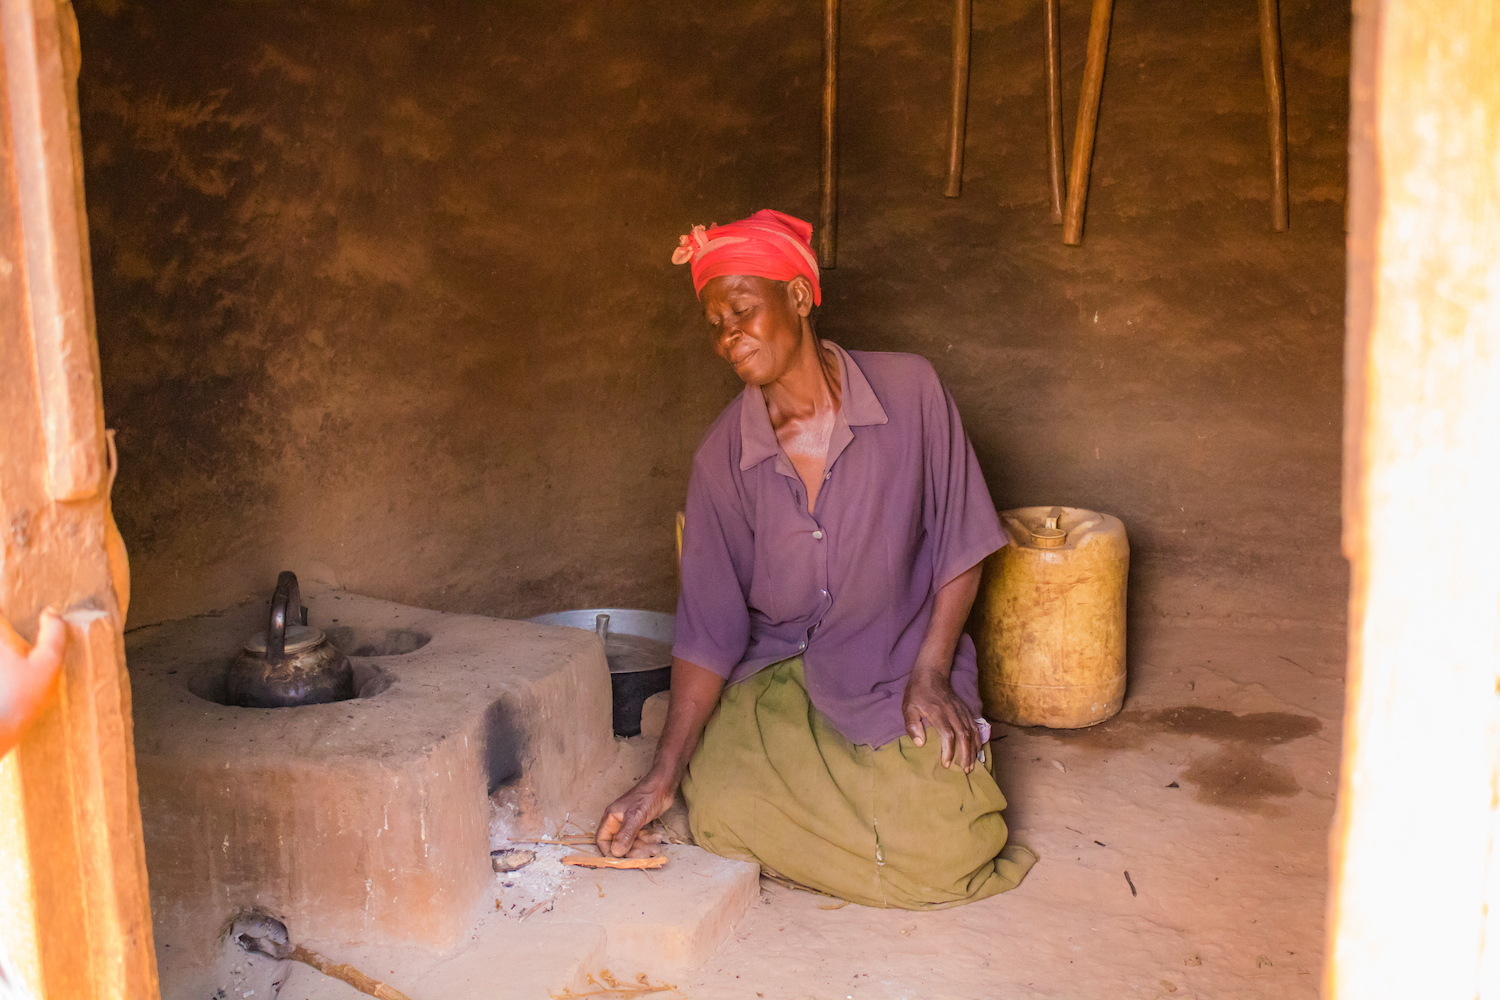 Woman with stove 1.jpg